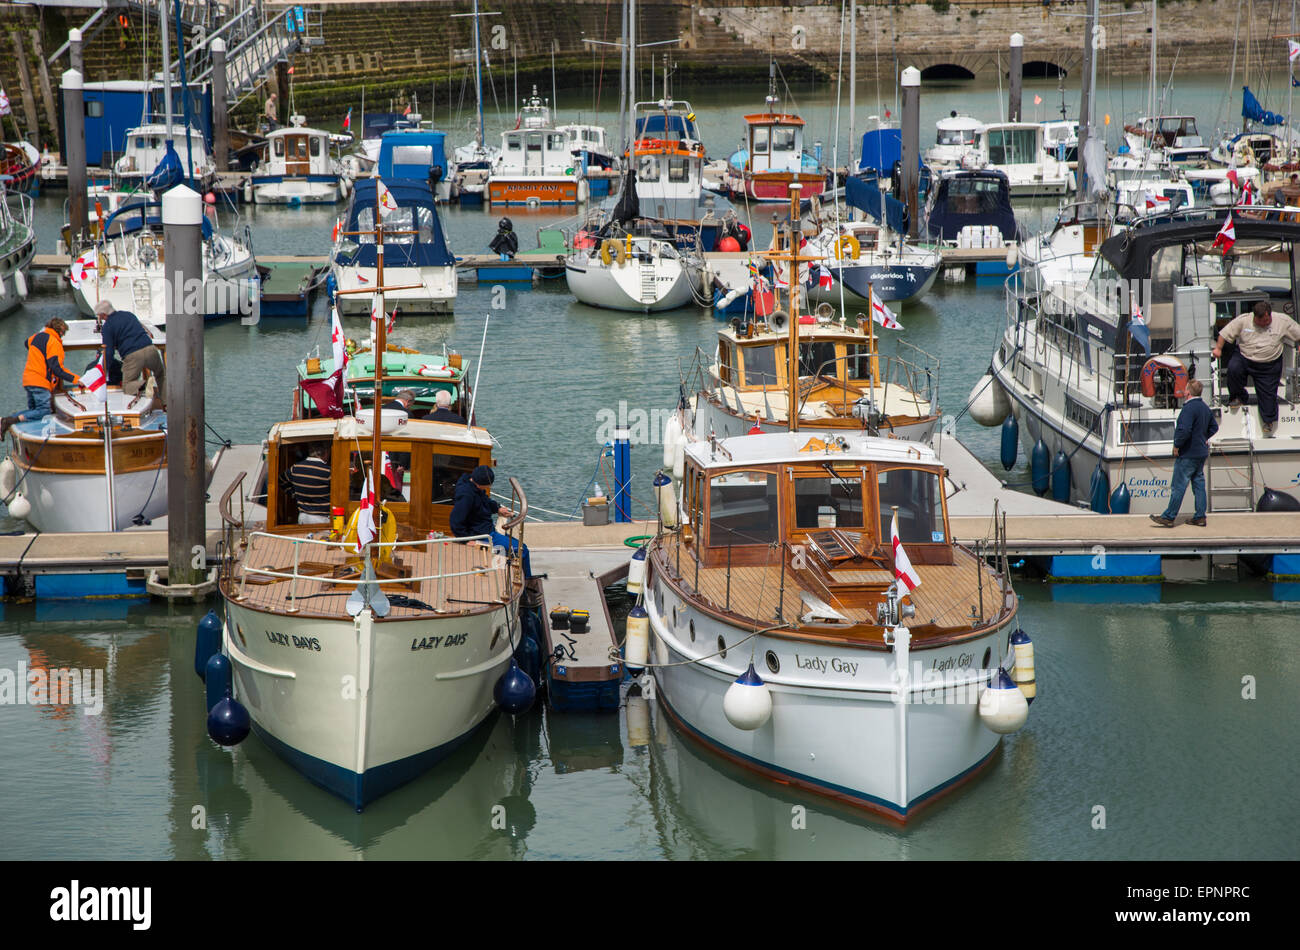 Ramsgate, UK. 20th May, 2015. Motor Yachts Lazy Days and Lady Gay in Ramsgate Royal Harbour for the 75th anniverasary - Stock Image